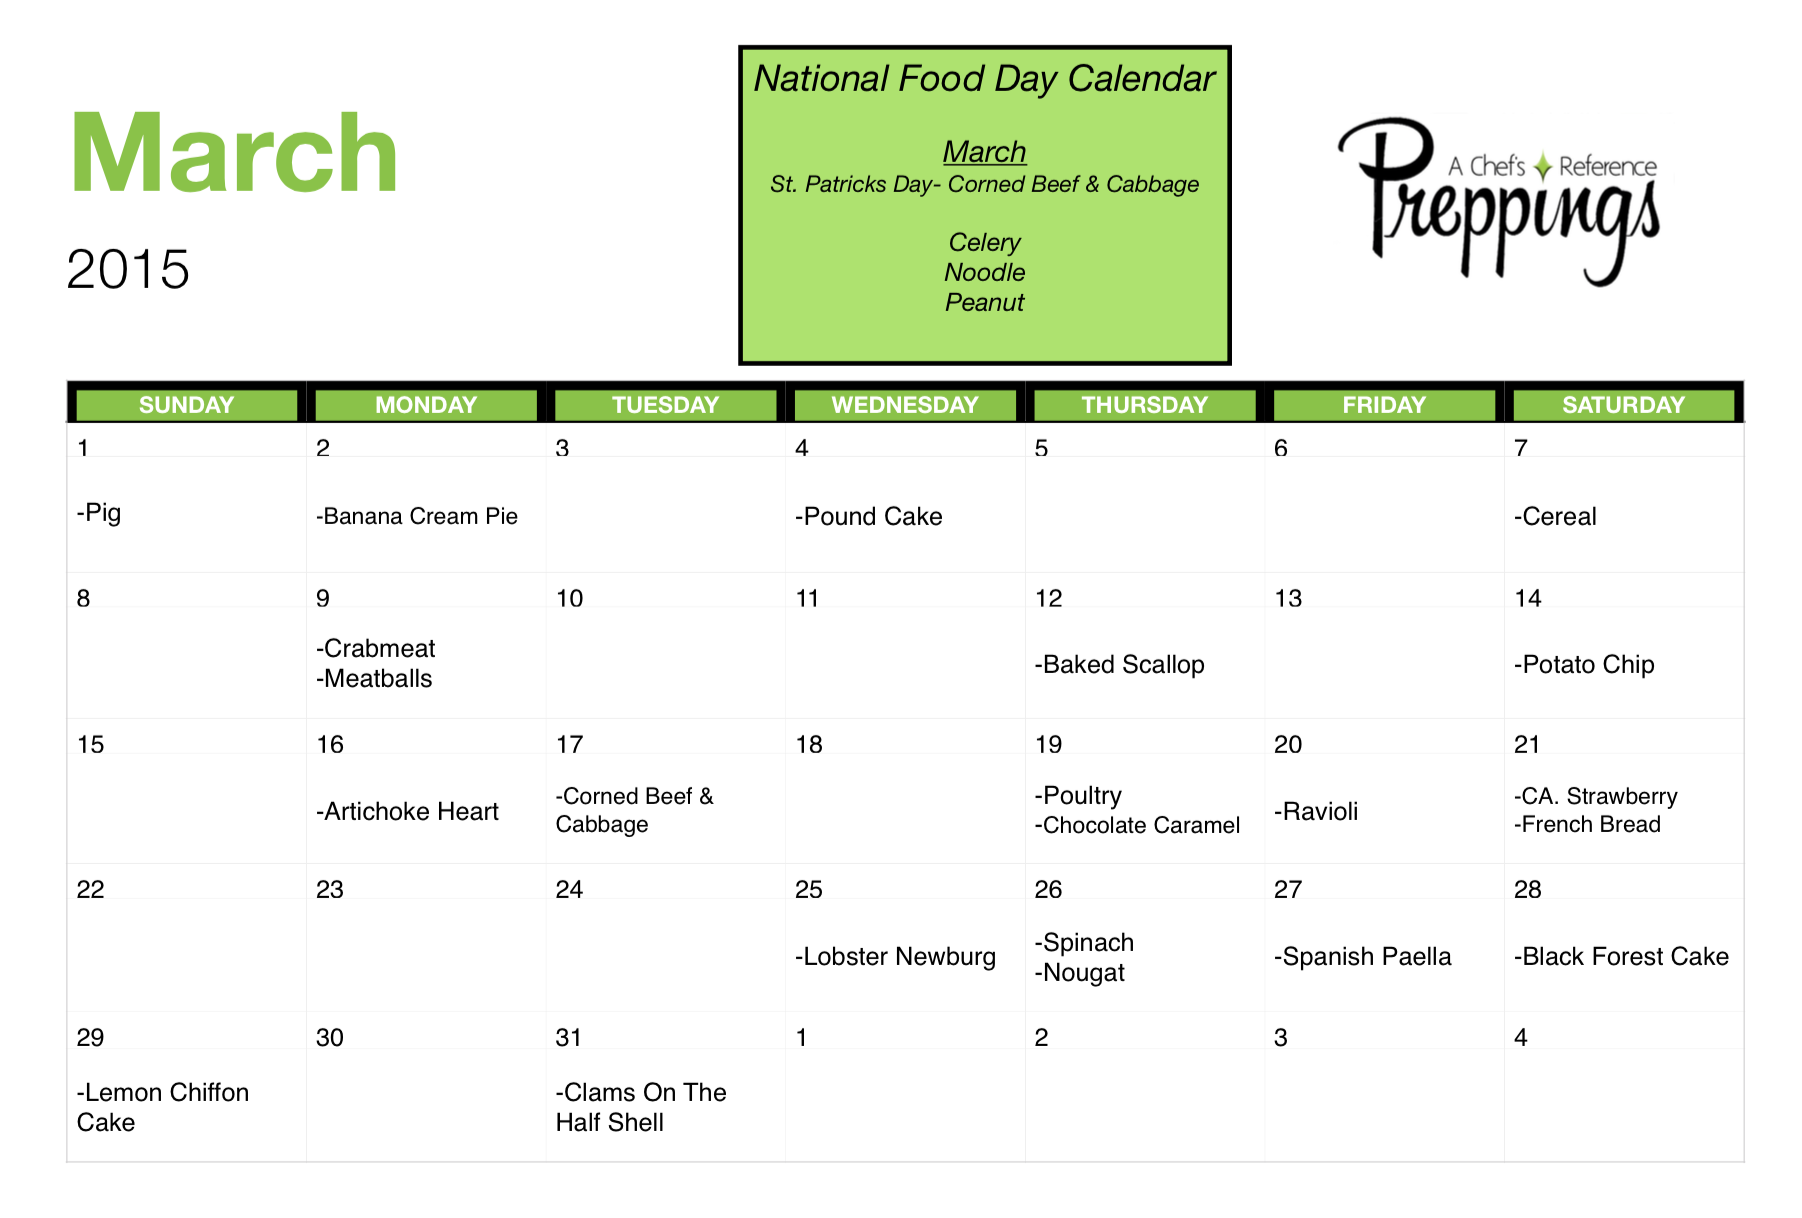 National Food Days- March 2015